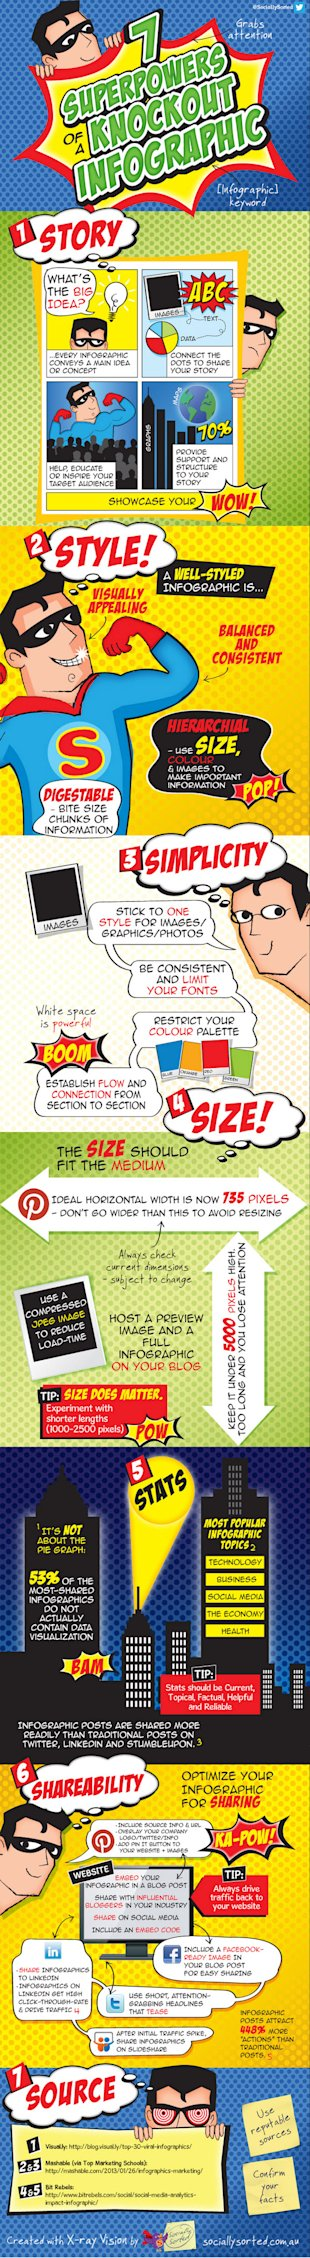 The 7 Key Elements to Creating Successful Infographics image 7 Priniciples of an Awesome Inforgraphic